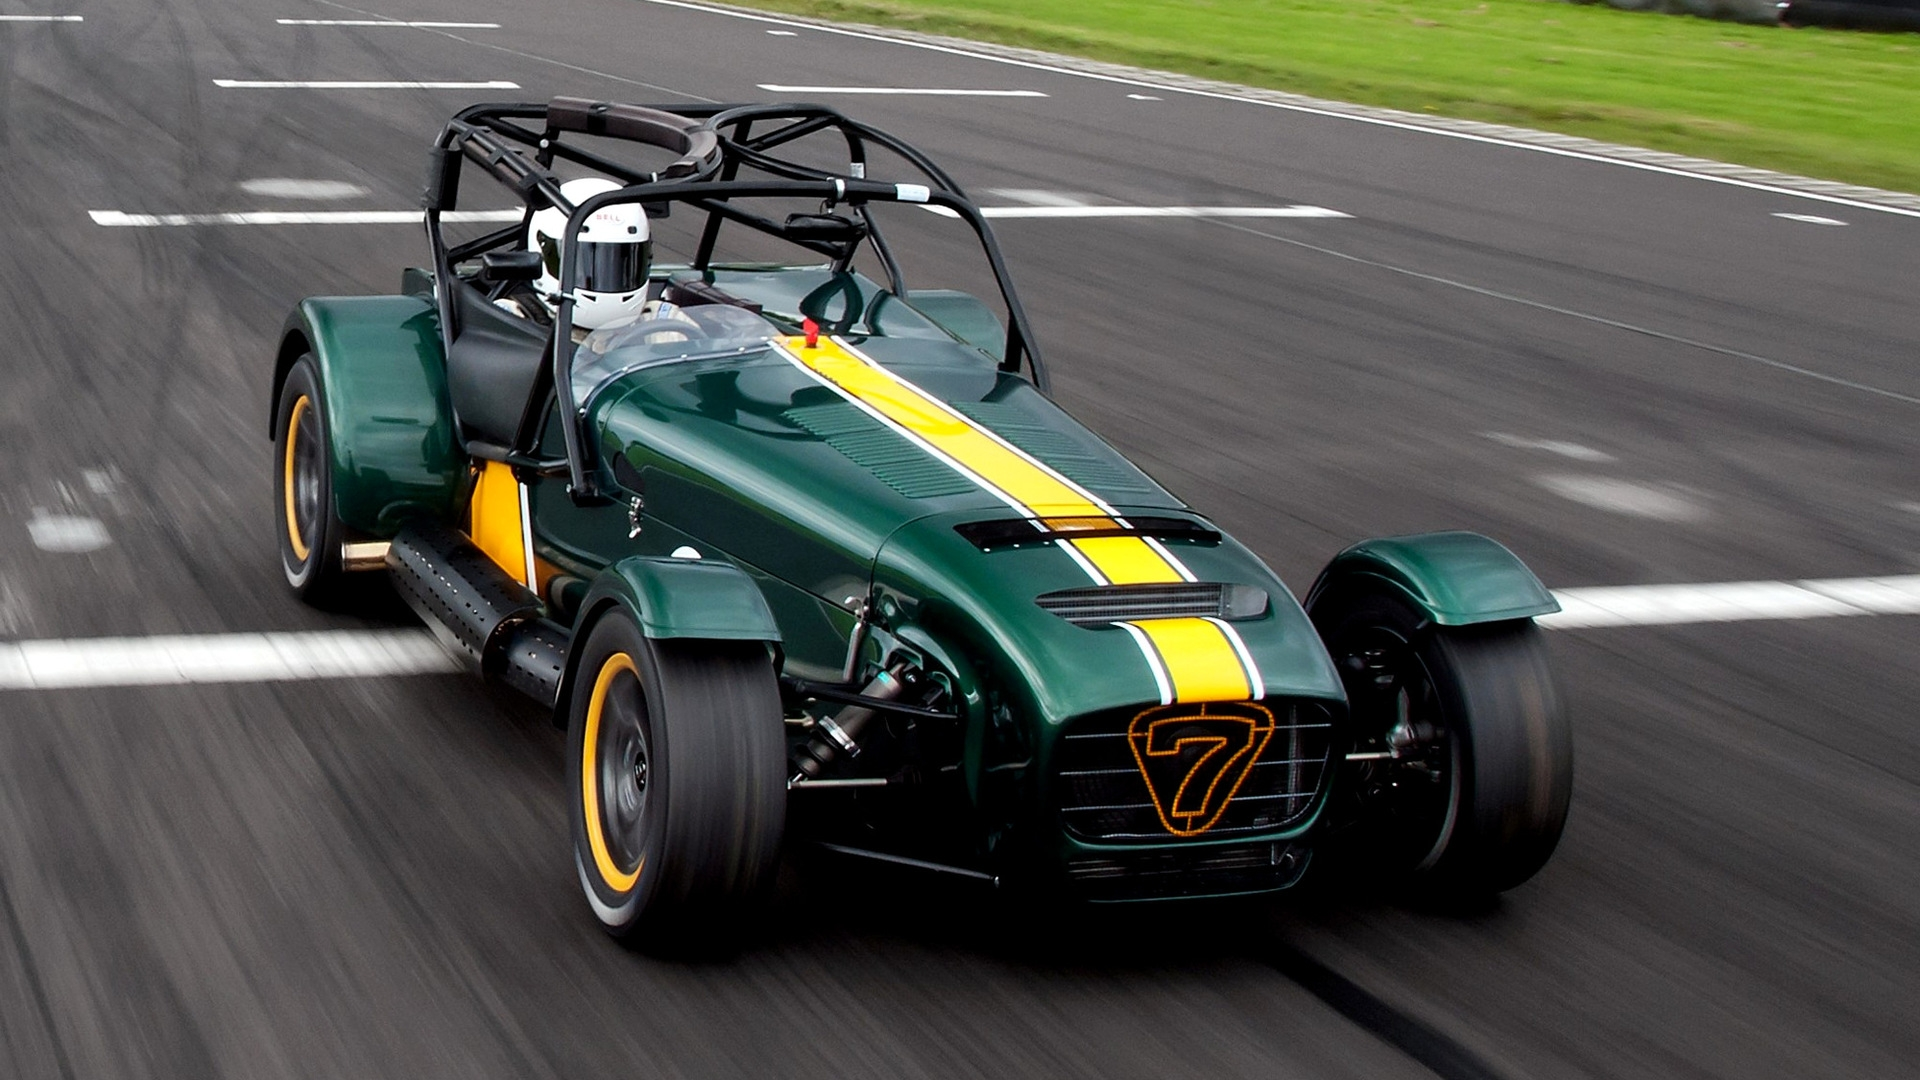 caterham-r-superlight-Caterham-Seven-Superlight-R-And-Hd-I-wallpaper-wpc9001254